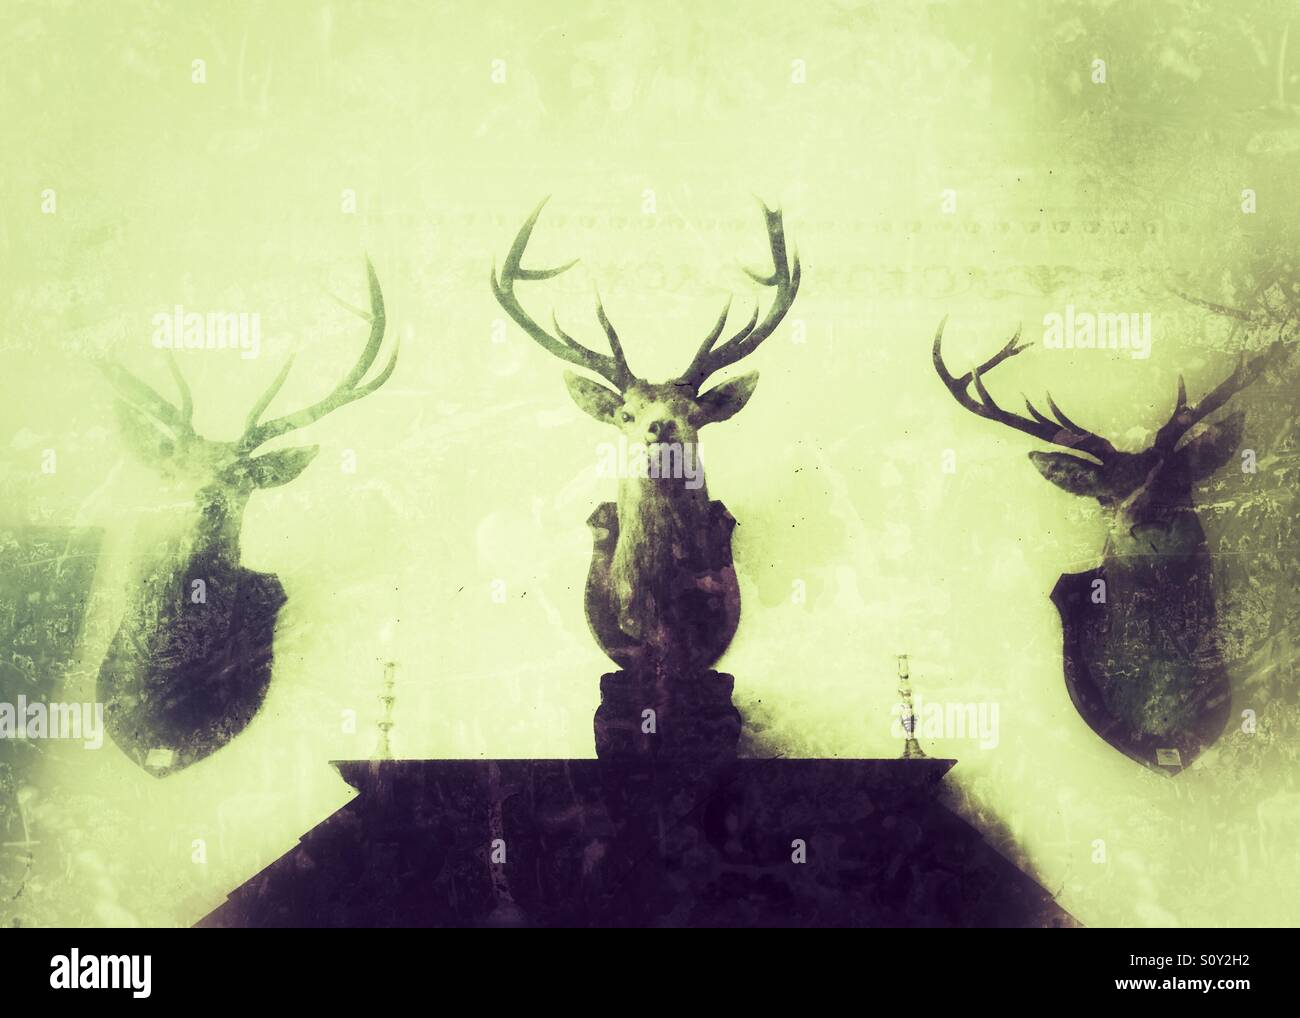 Antlers On Wall Stock Photos & Antlers On Wall Stock Images - Alamy